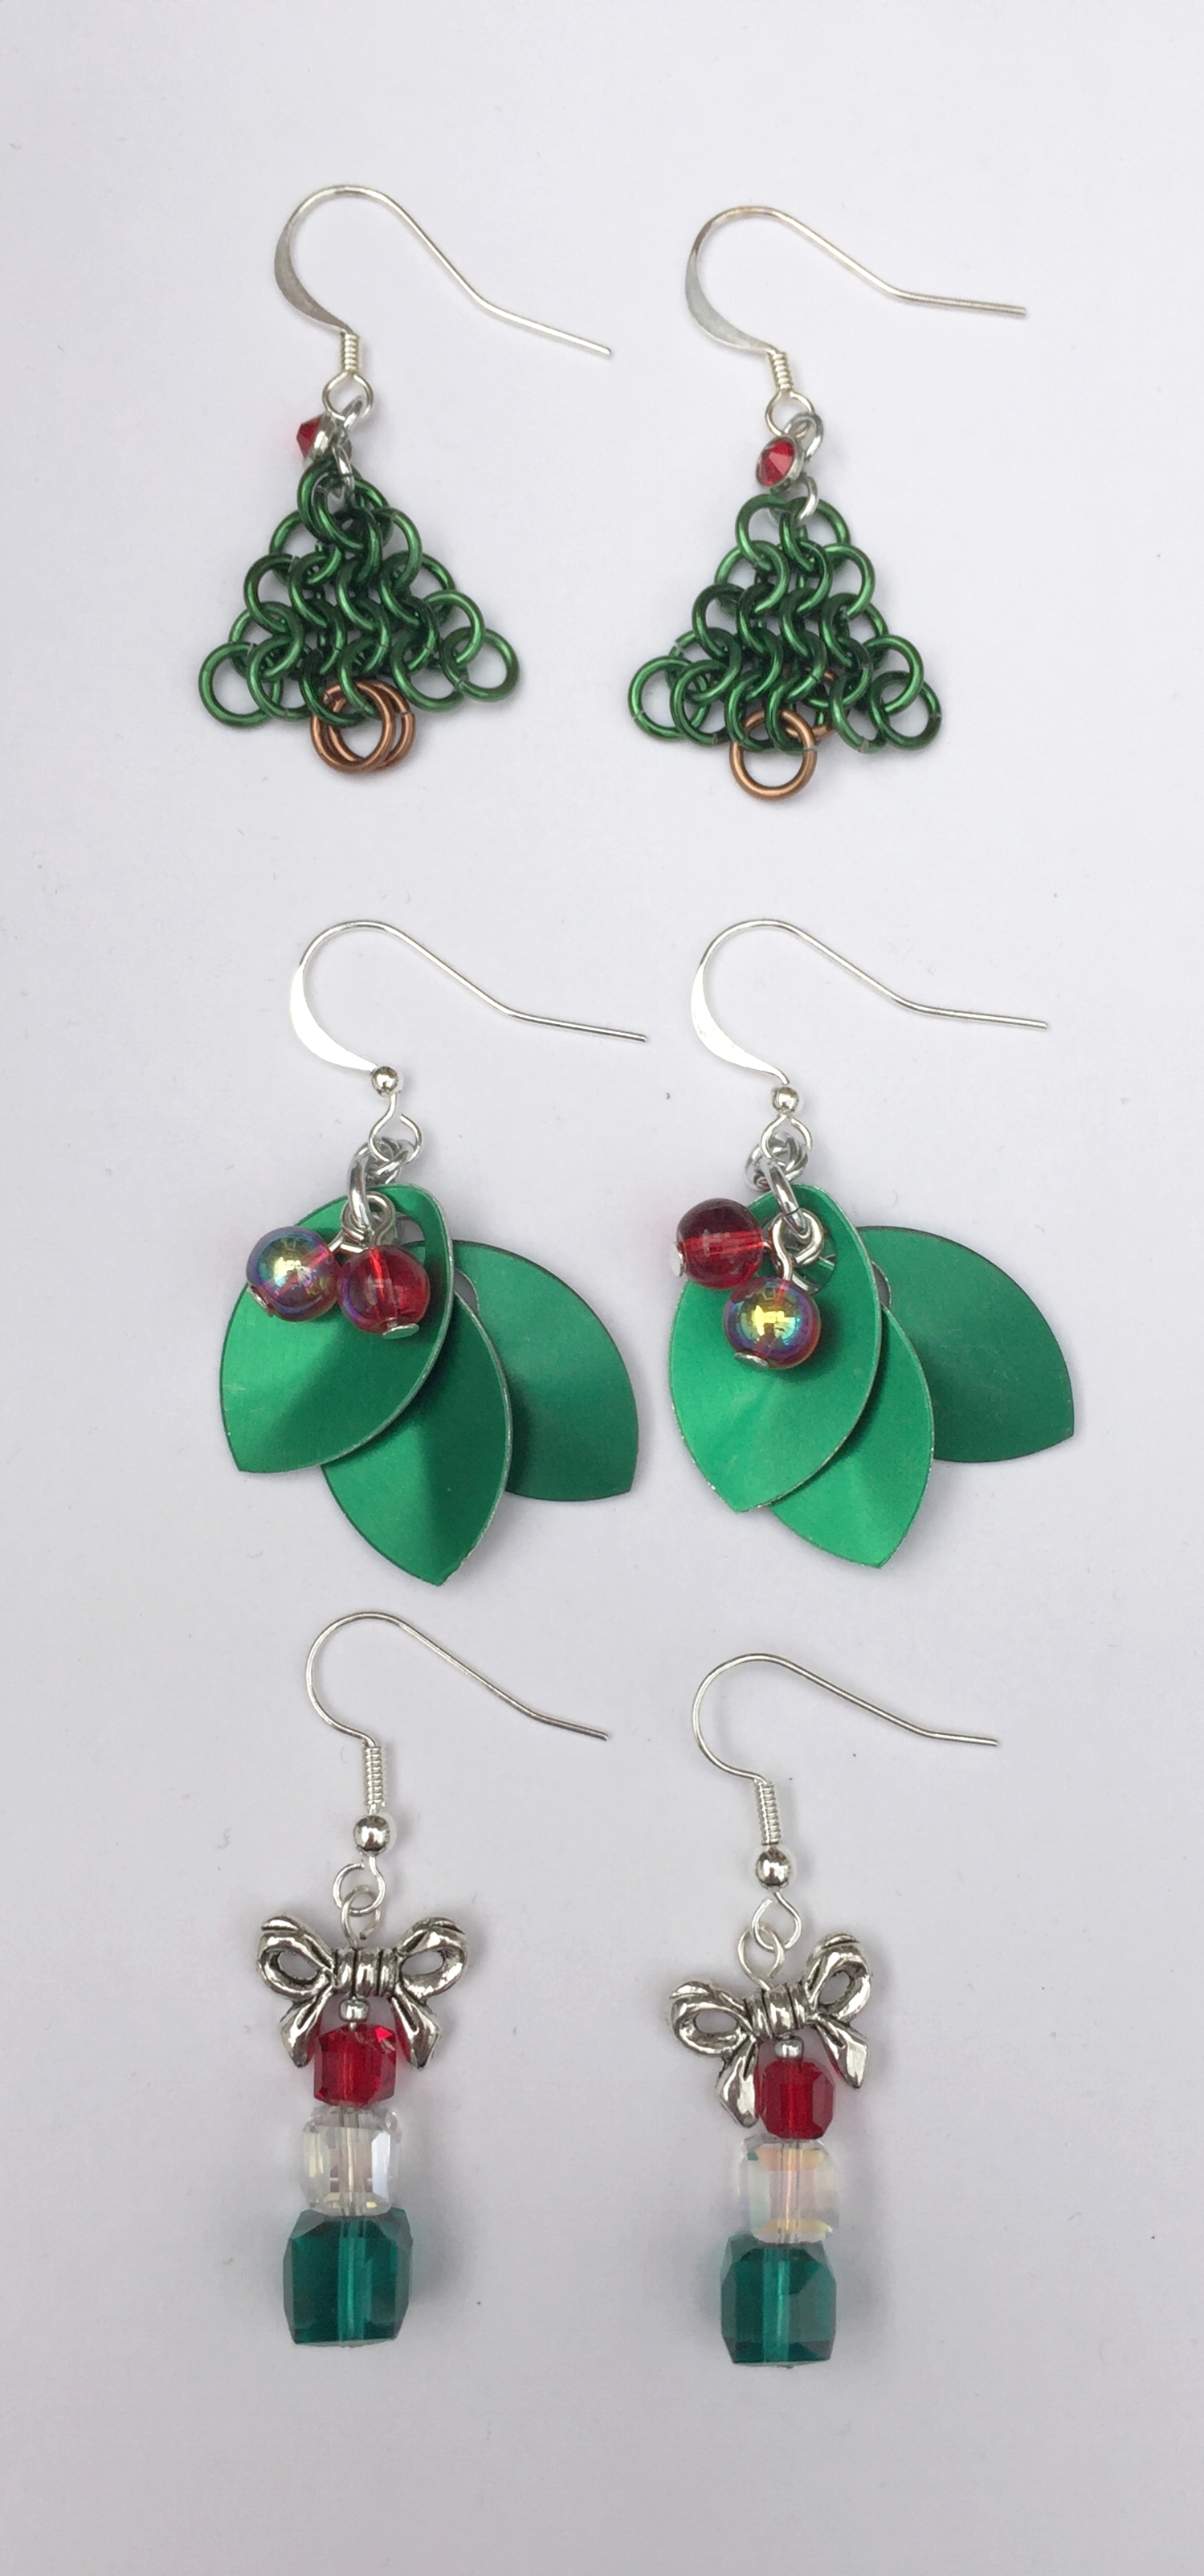 Anna Boyle website Xmas Earrings.JPG